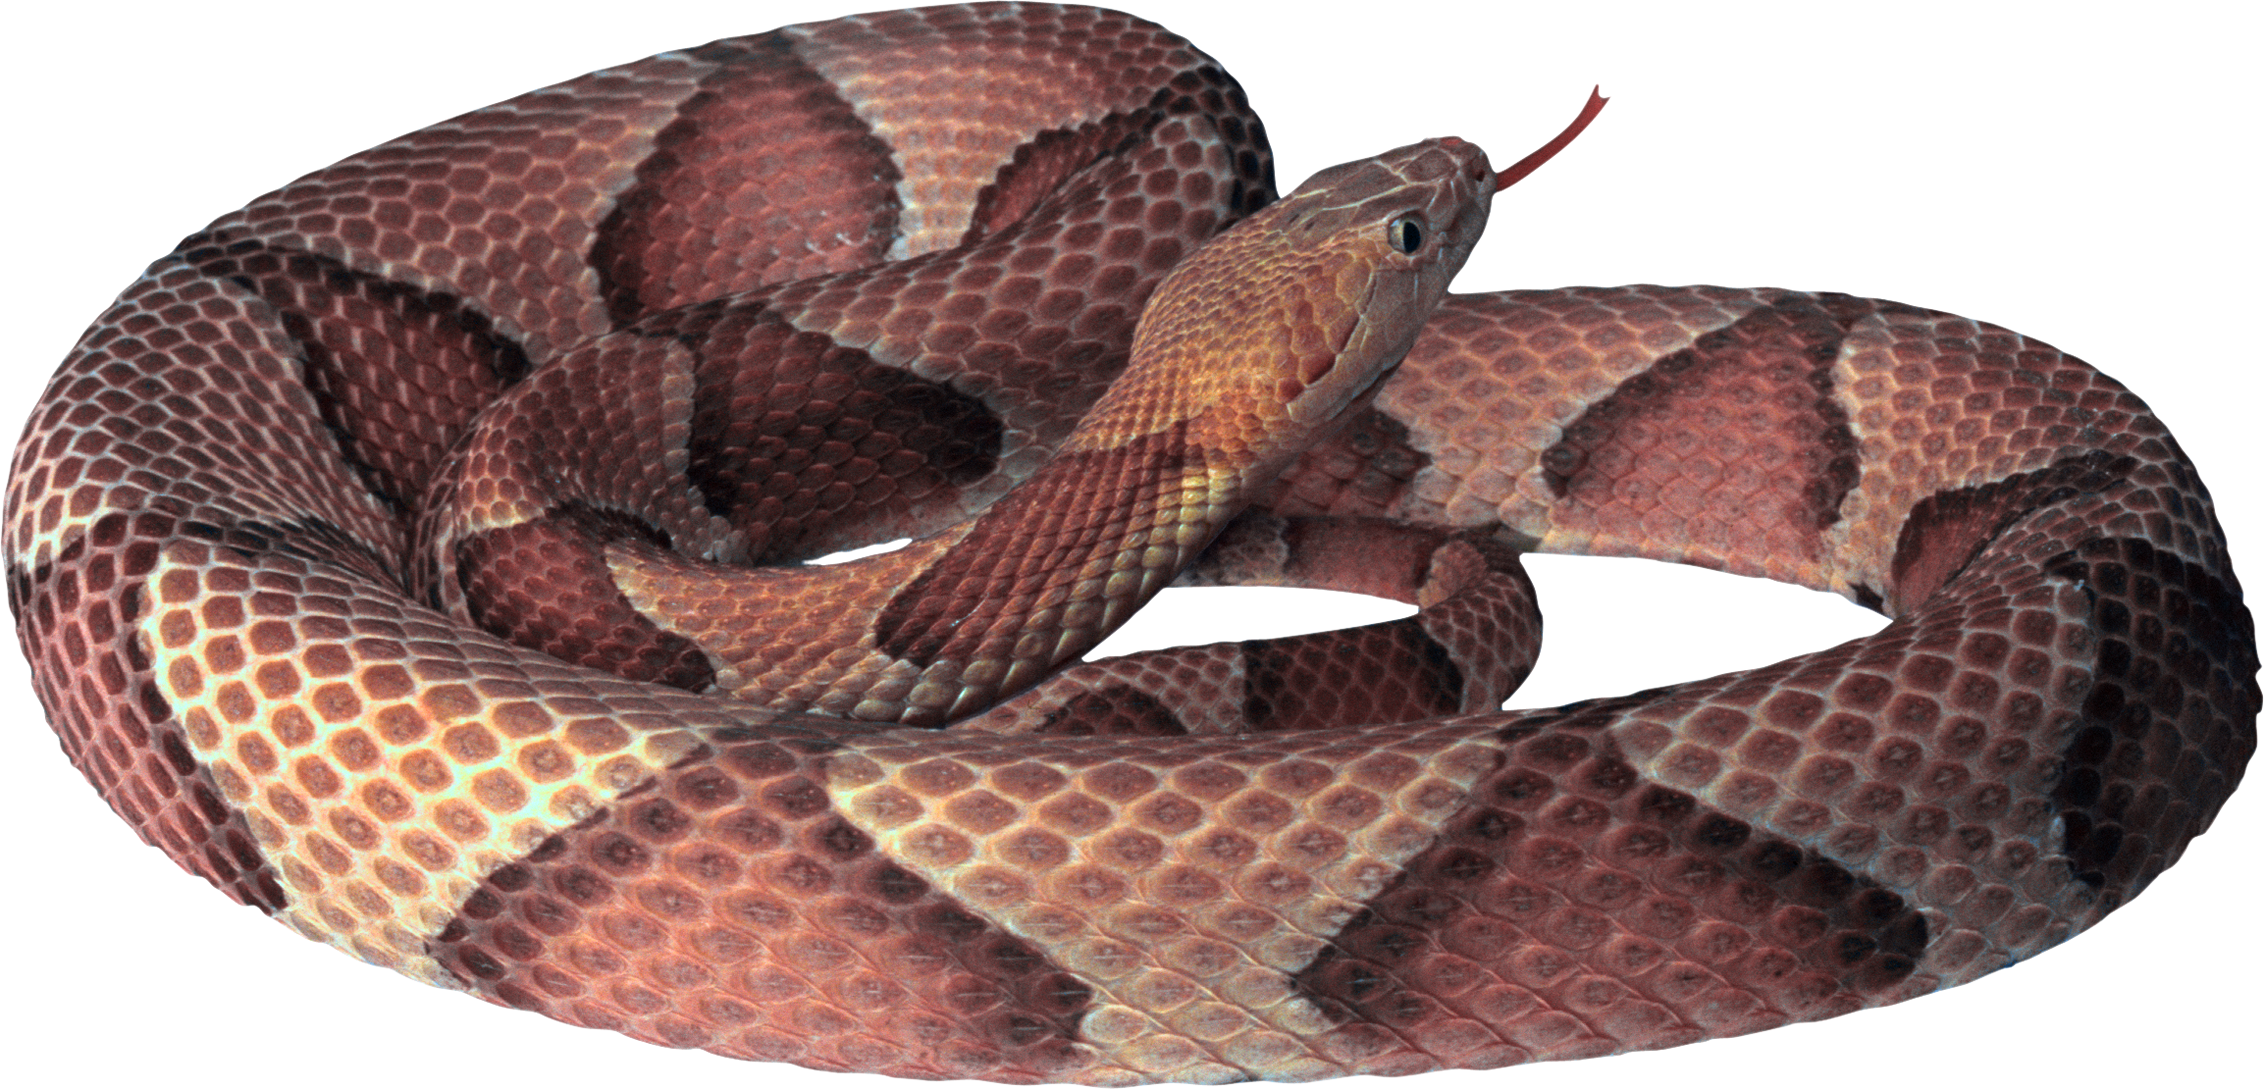 Snake clipart water moccasin. Png image picture download